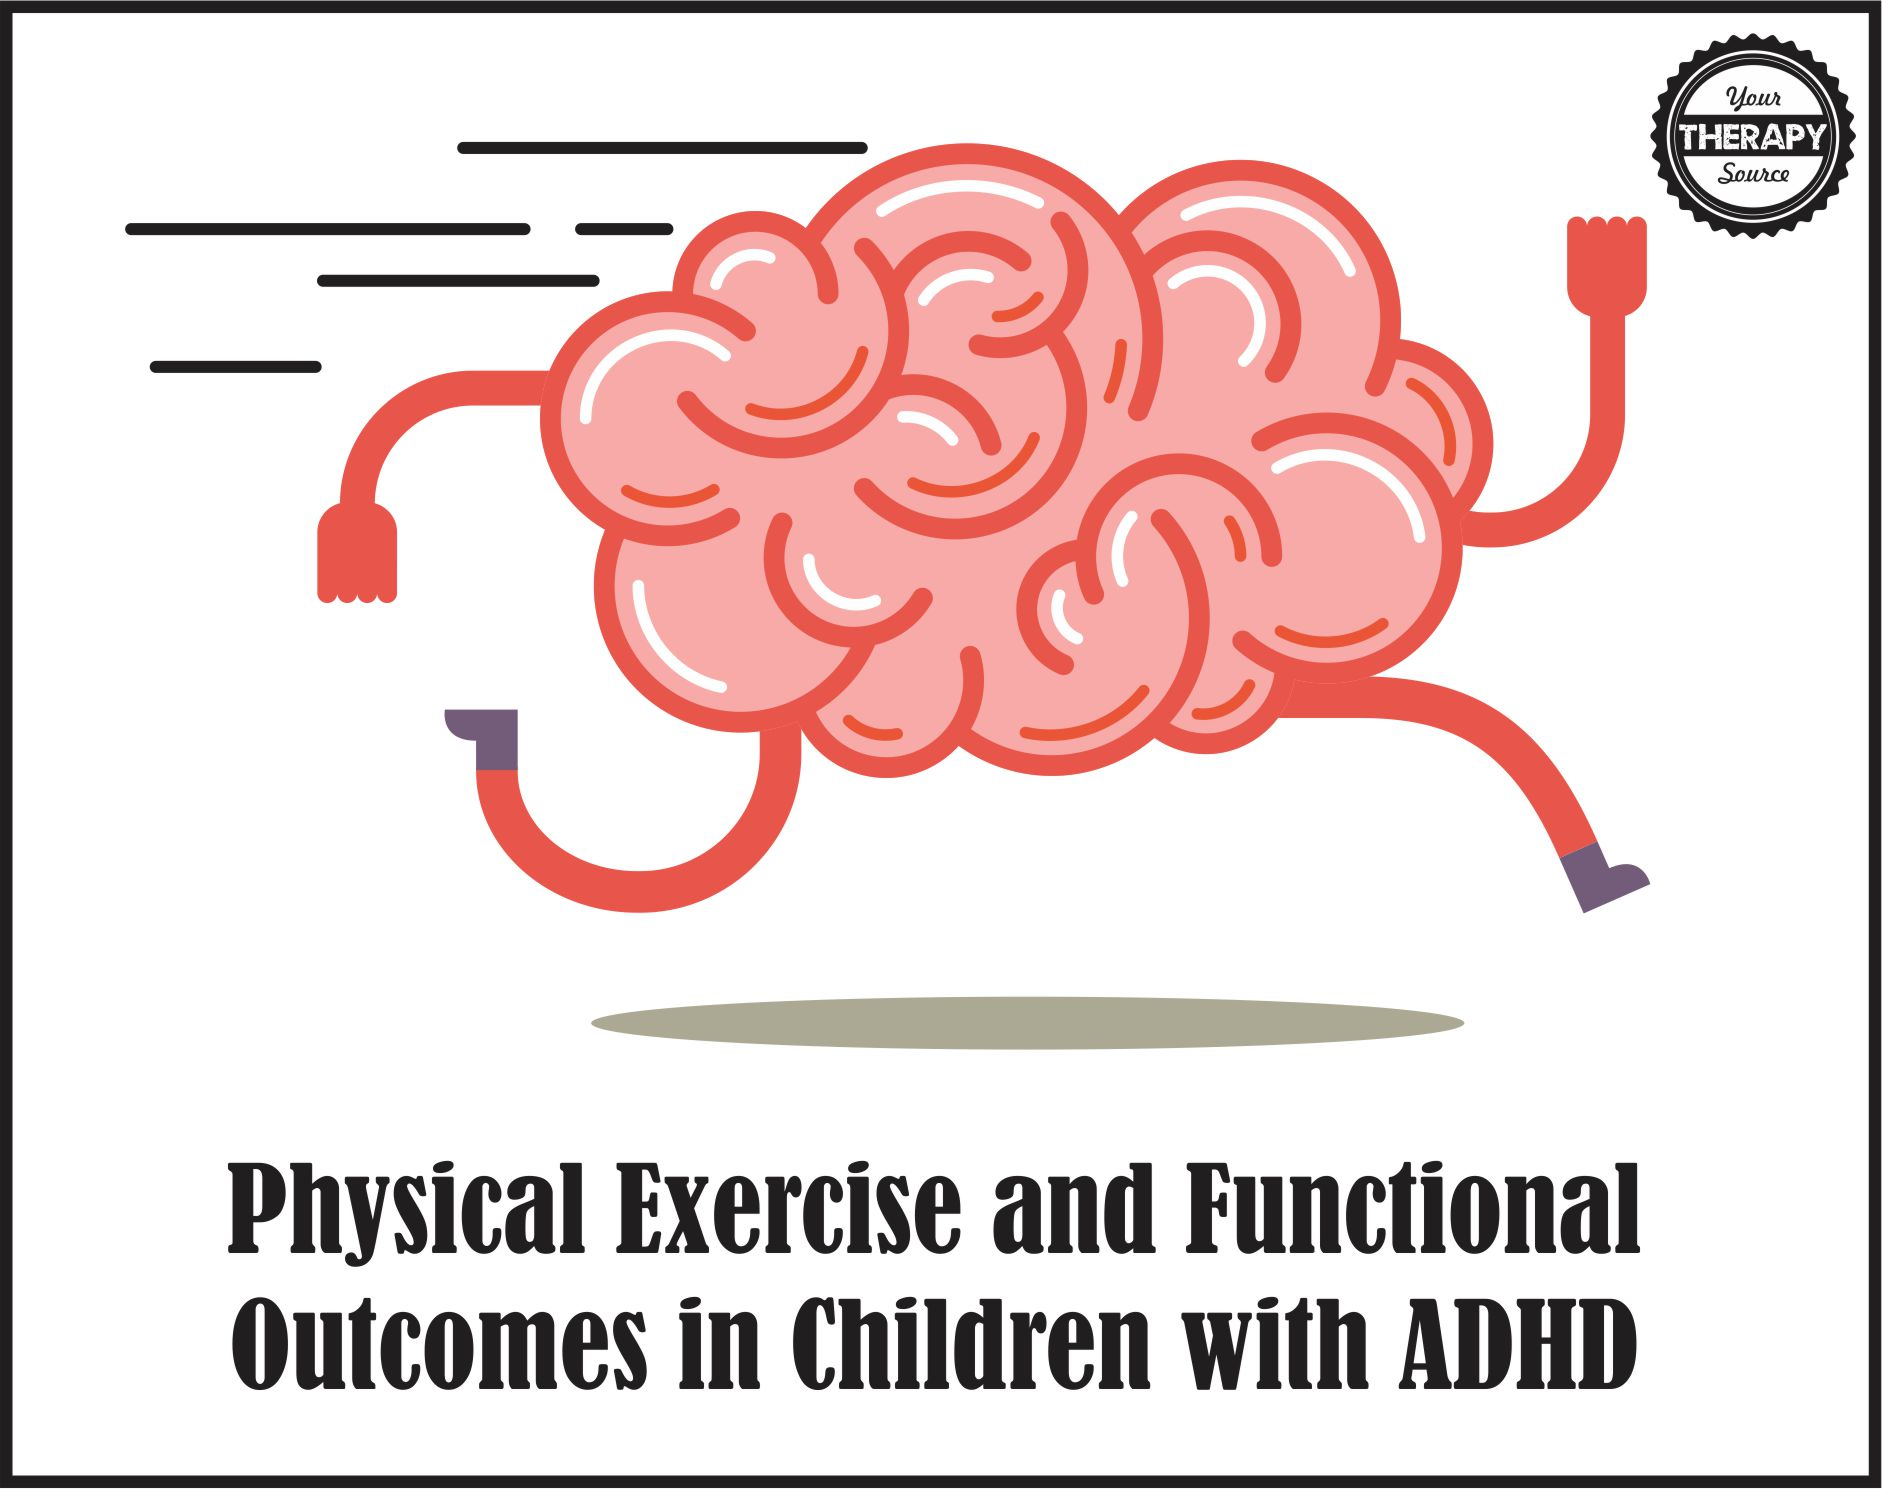 the history and analysis of attention deficit disorder Helpful organizations and information • children and adults with attention deficity/hyperactivity disorder is a national, nonprofit organization that provides education, advocacy and support for people with adhd.